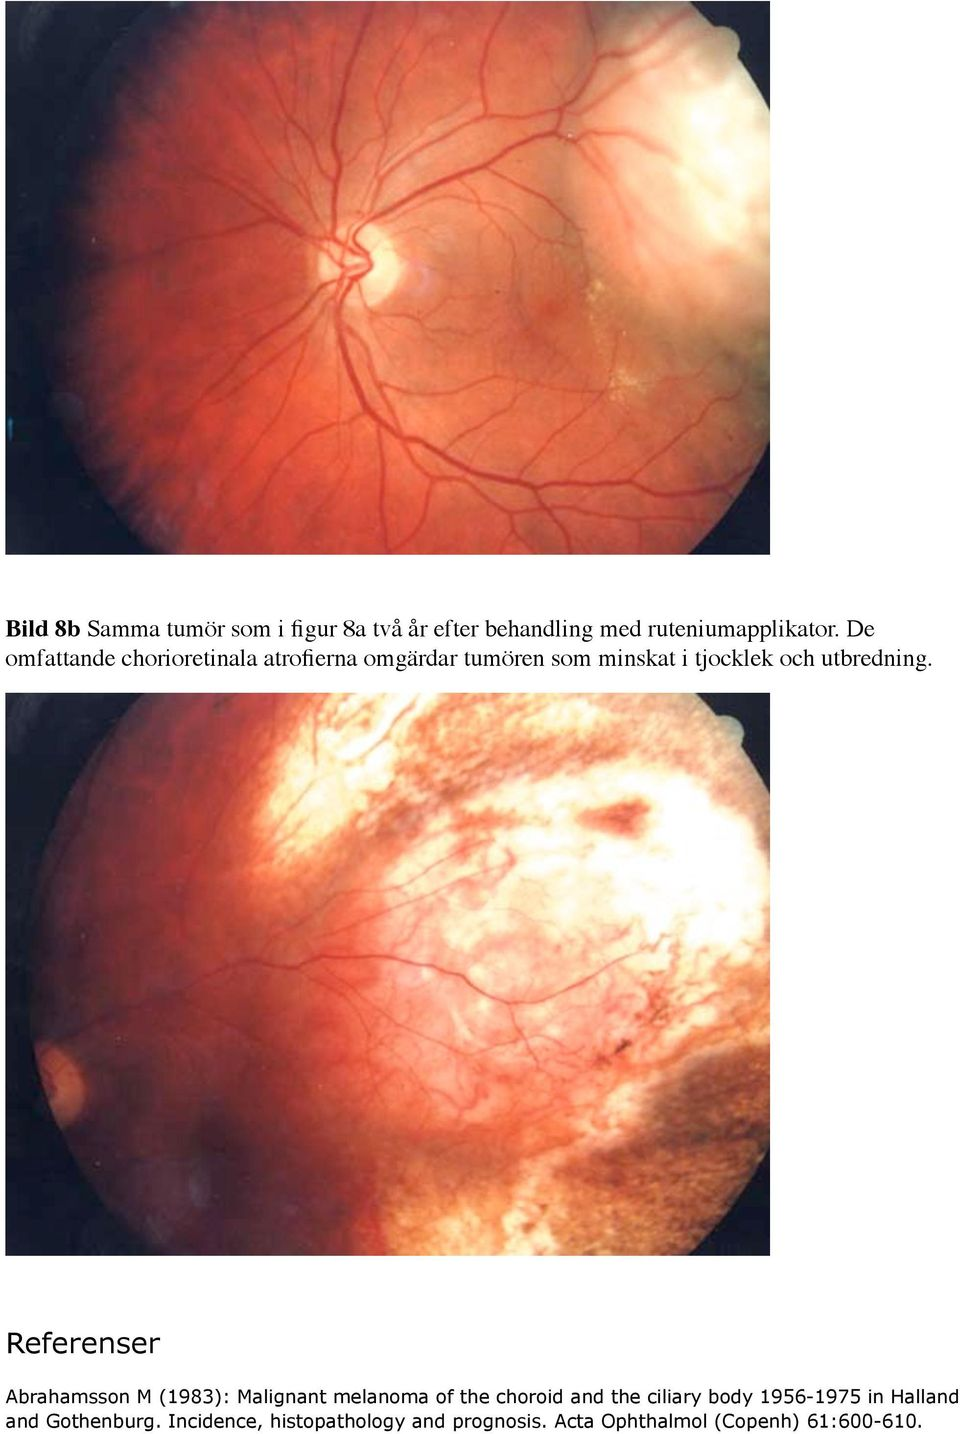 Referenser Abrahamsson M (1983): Malignant melanoma of the choroid and the ciliary body